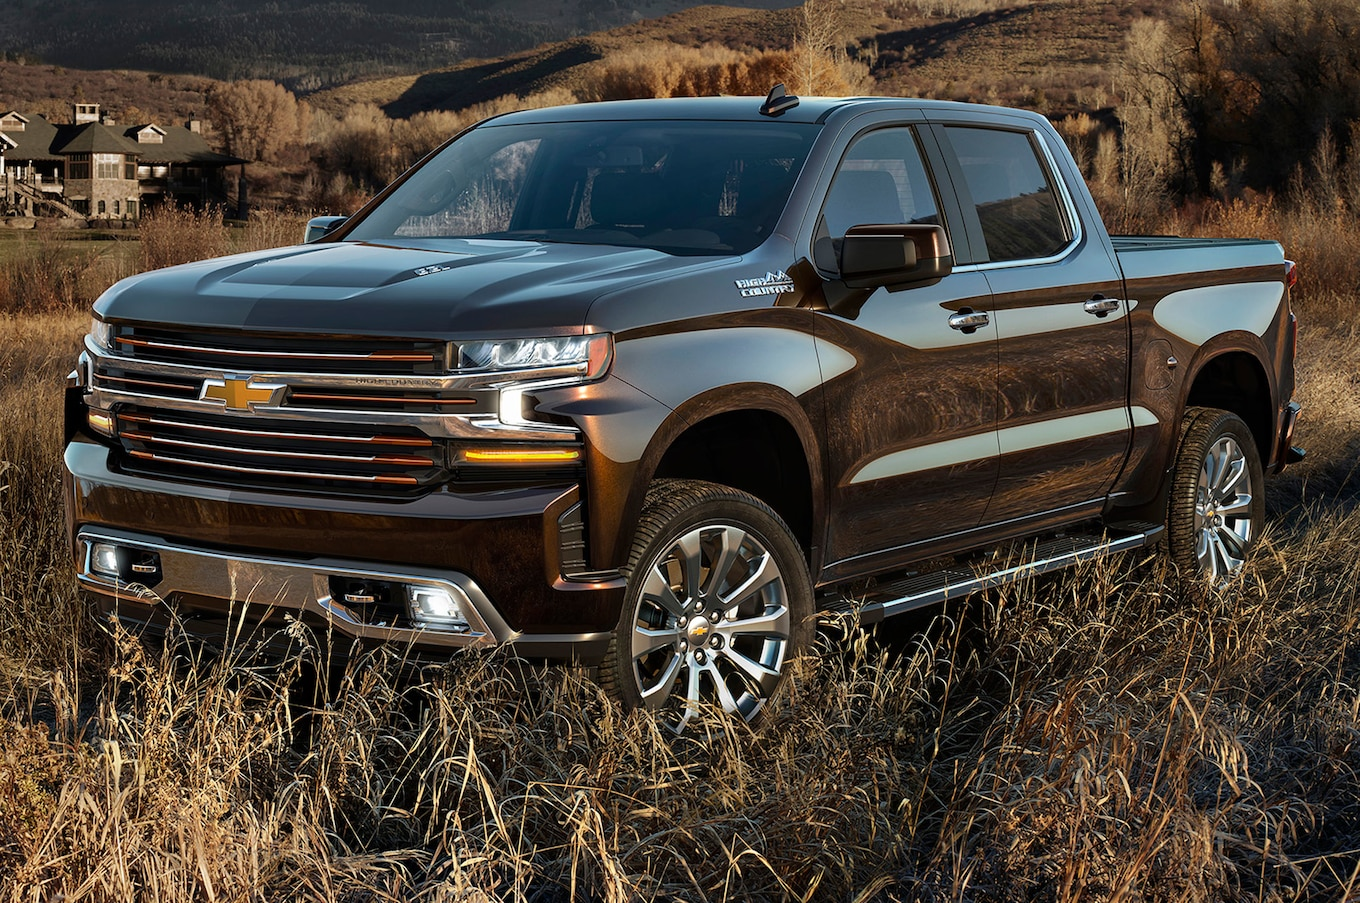 The all new Chevy Silverado , the official truck of real people.